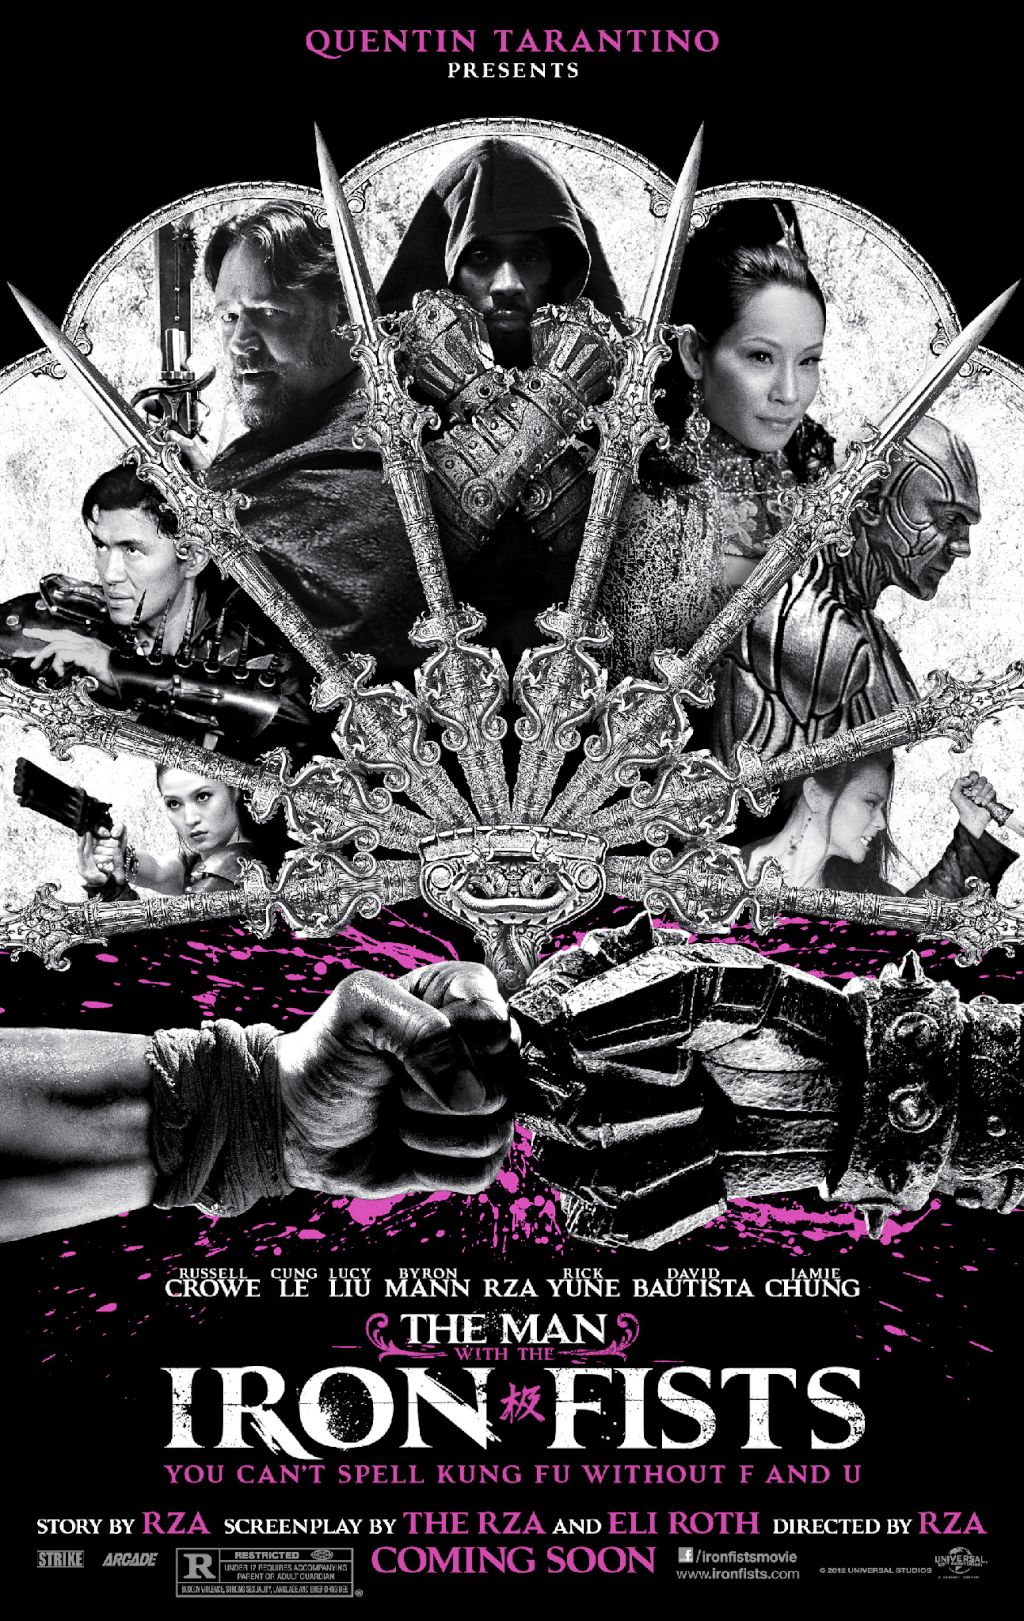 http://i2.wp.com/mediocrityisthenewgenius.files.wordpress.com/2012/06/iron-fist-poster2.jpg